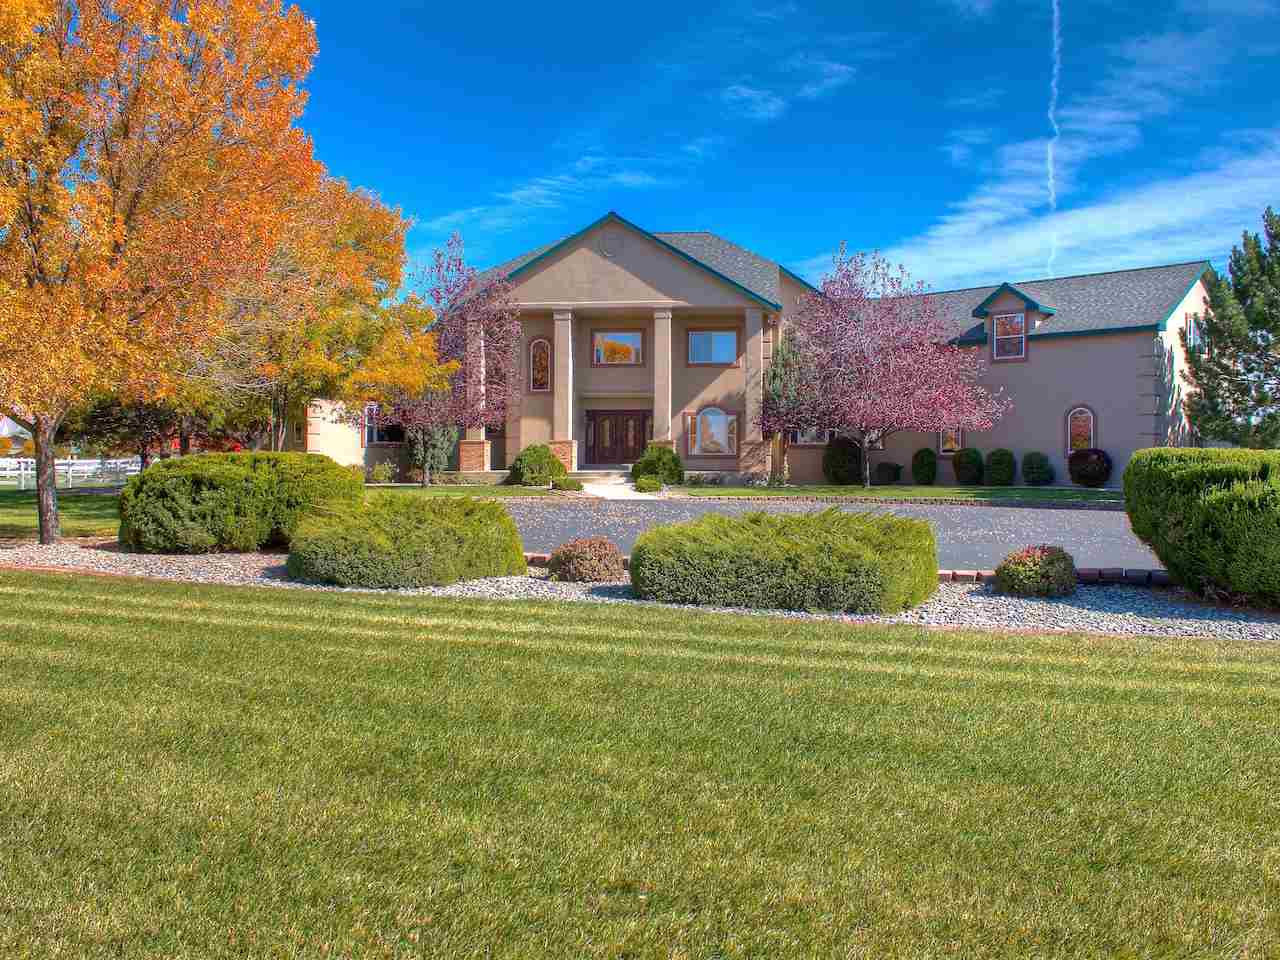 882 26 Road, Grand Junction, CO 81505